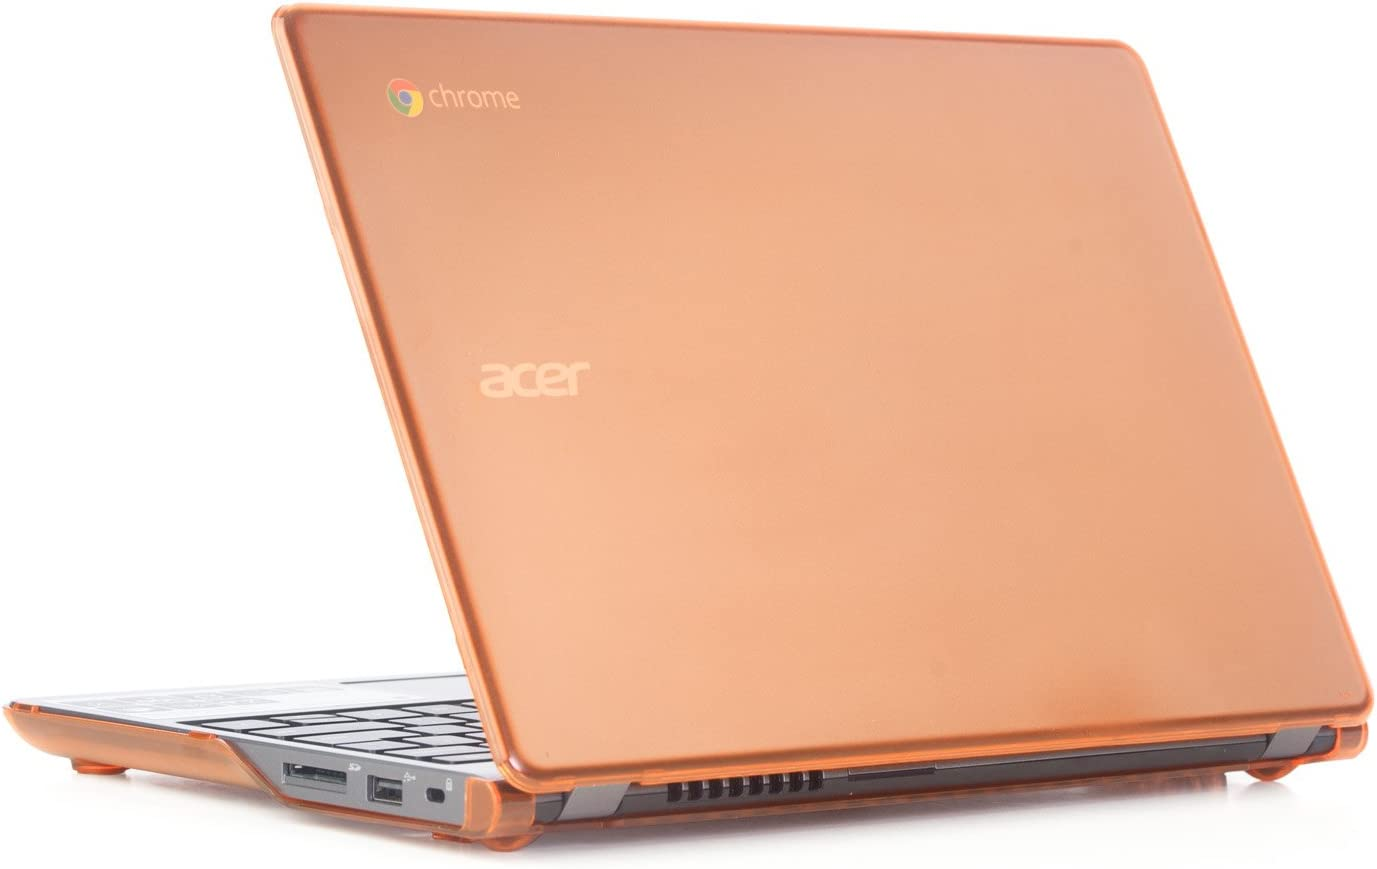 "Orange iPearl mCover Hard Shell Case for 11.6"" Acer C720 C720P C740 Series ChromeBook Laptop (NOT Compatible with Newer 11.6"" Acer Chromebook 11 C730 / CB3-111 / CB3-131 Series Laptop)"